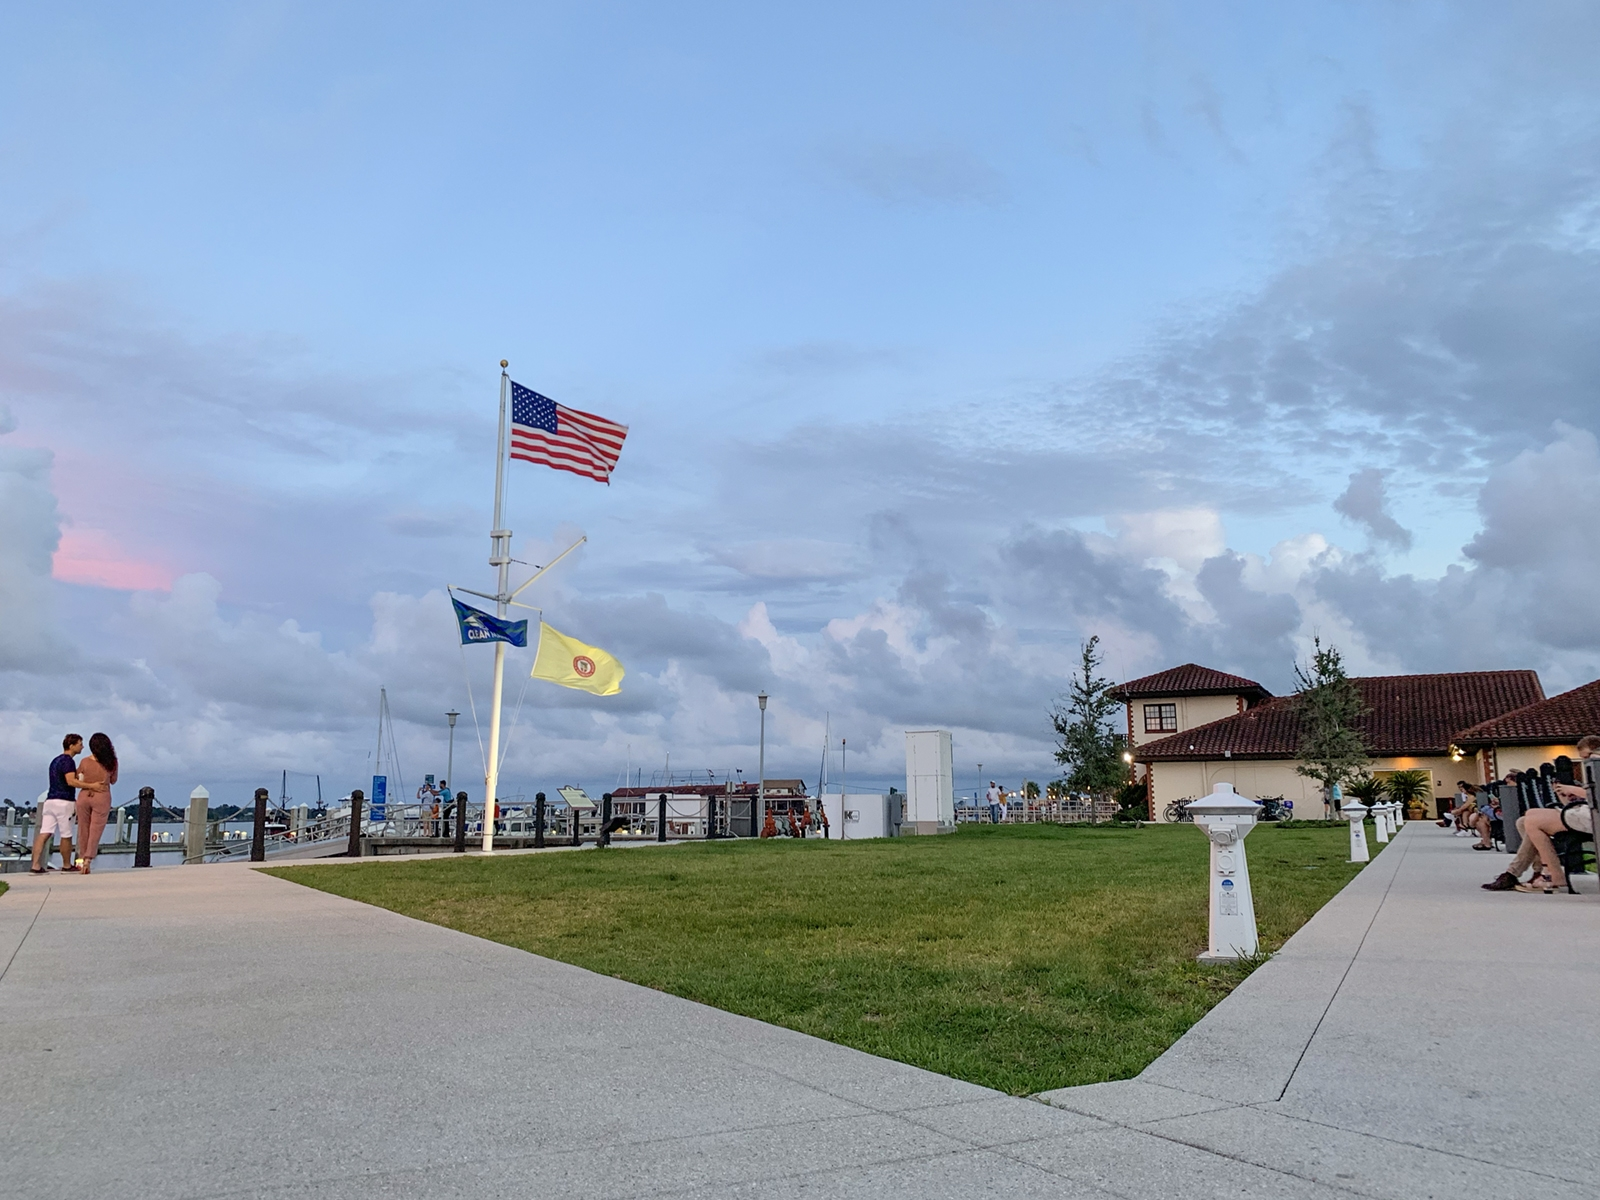 The bay front of St. Augustine showing people sitting at benches and over looking the water. A stormy evening sky falls behind the american flag and the marina structure